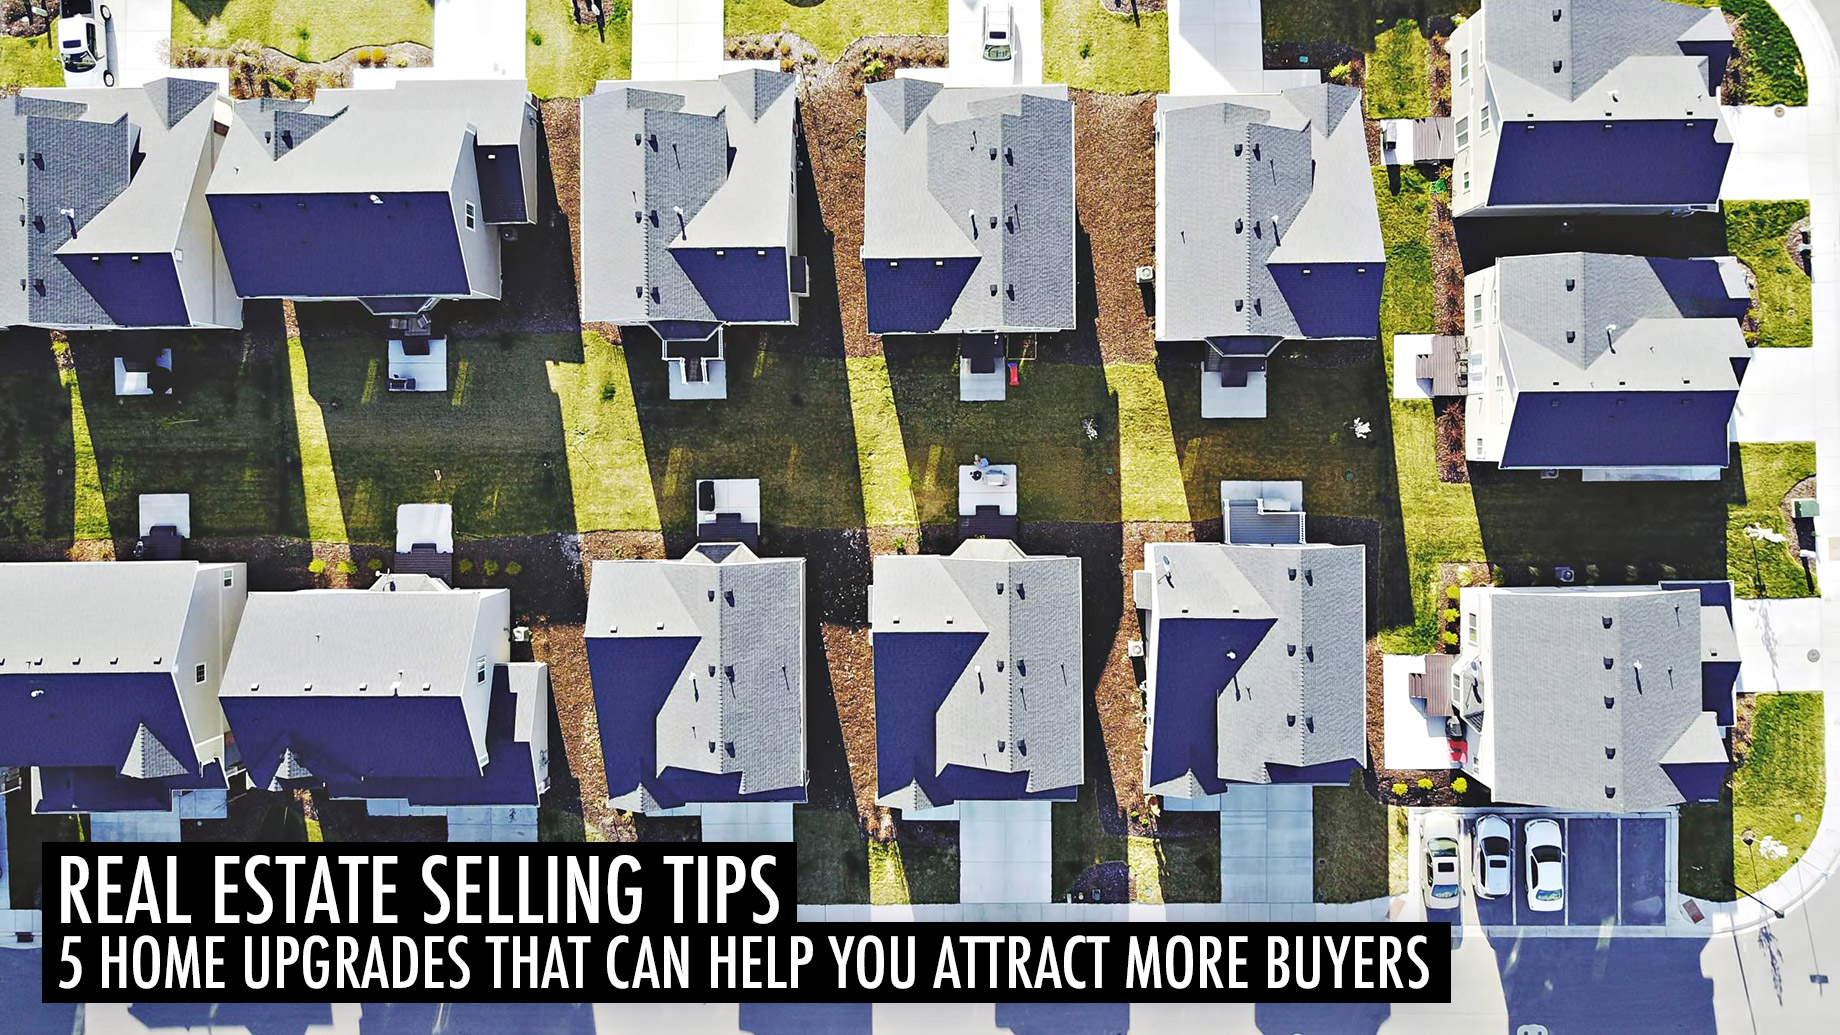 Real Estate Selling Tips - 5 Home Upgrades That Can Help You Attract More Buyers